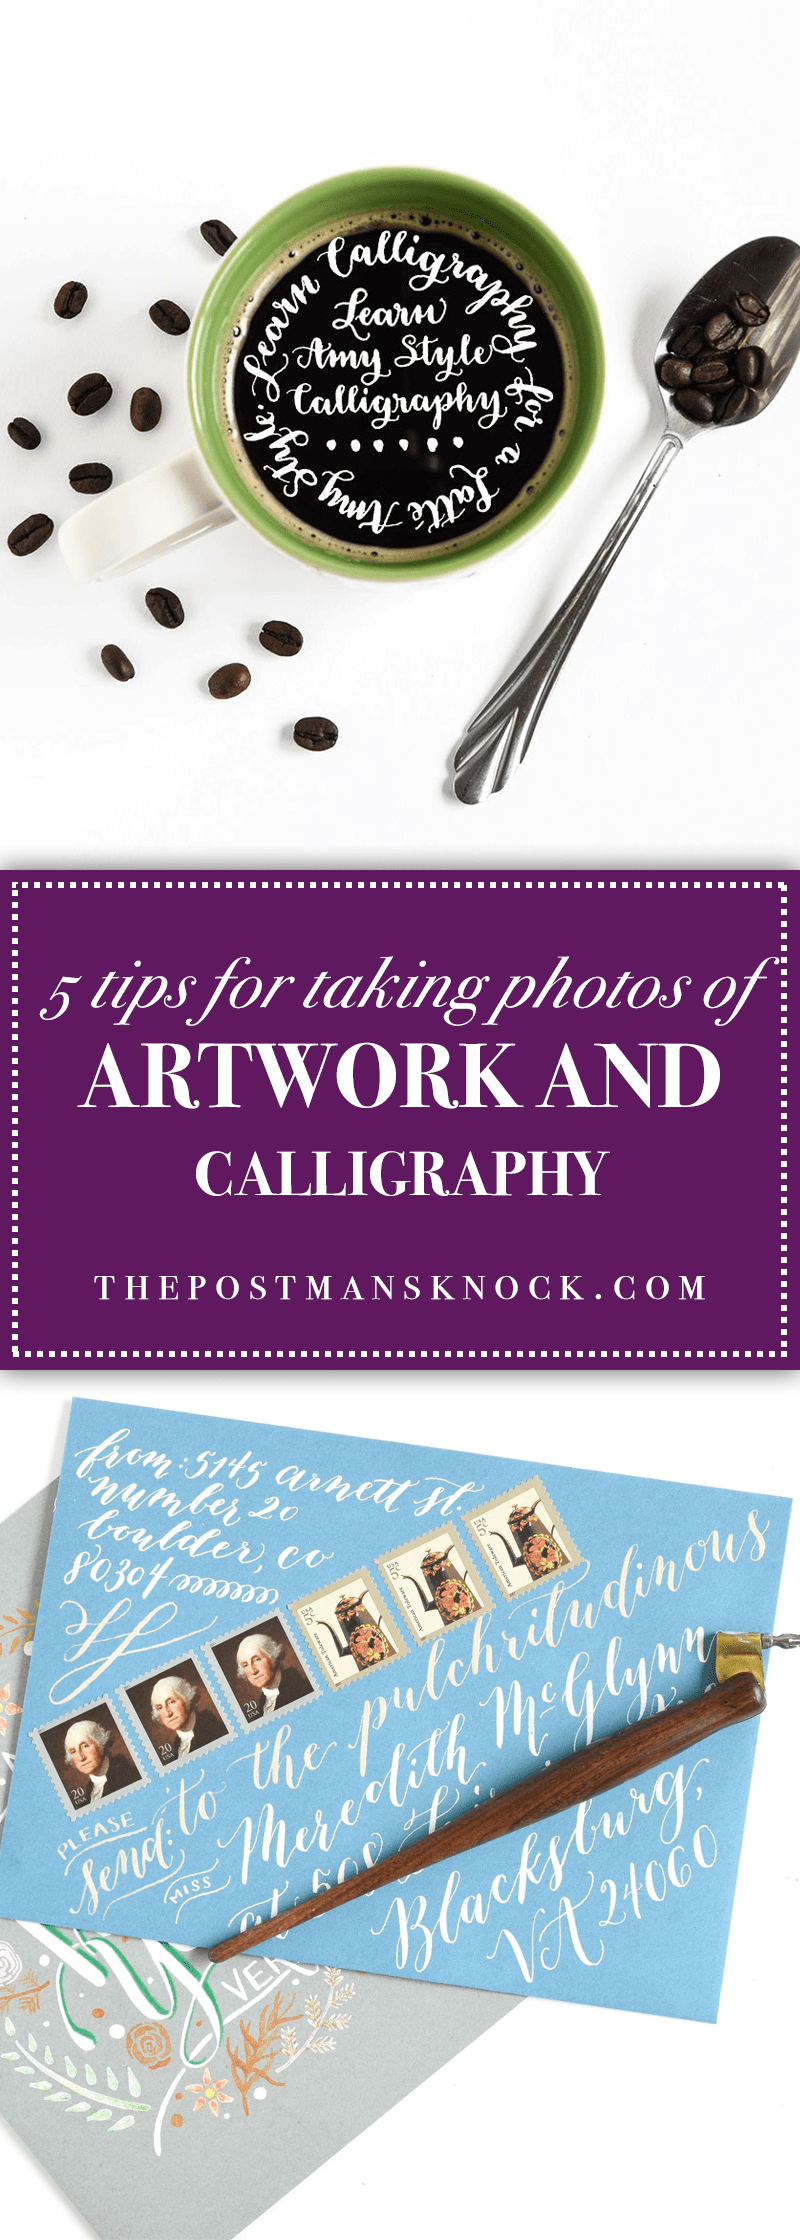 5 Tips for Taking s of Artwork and Calligraphy